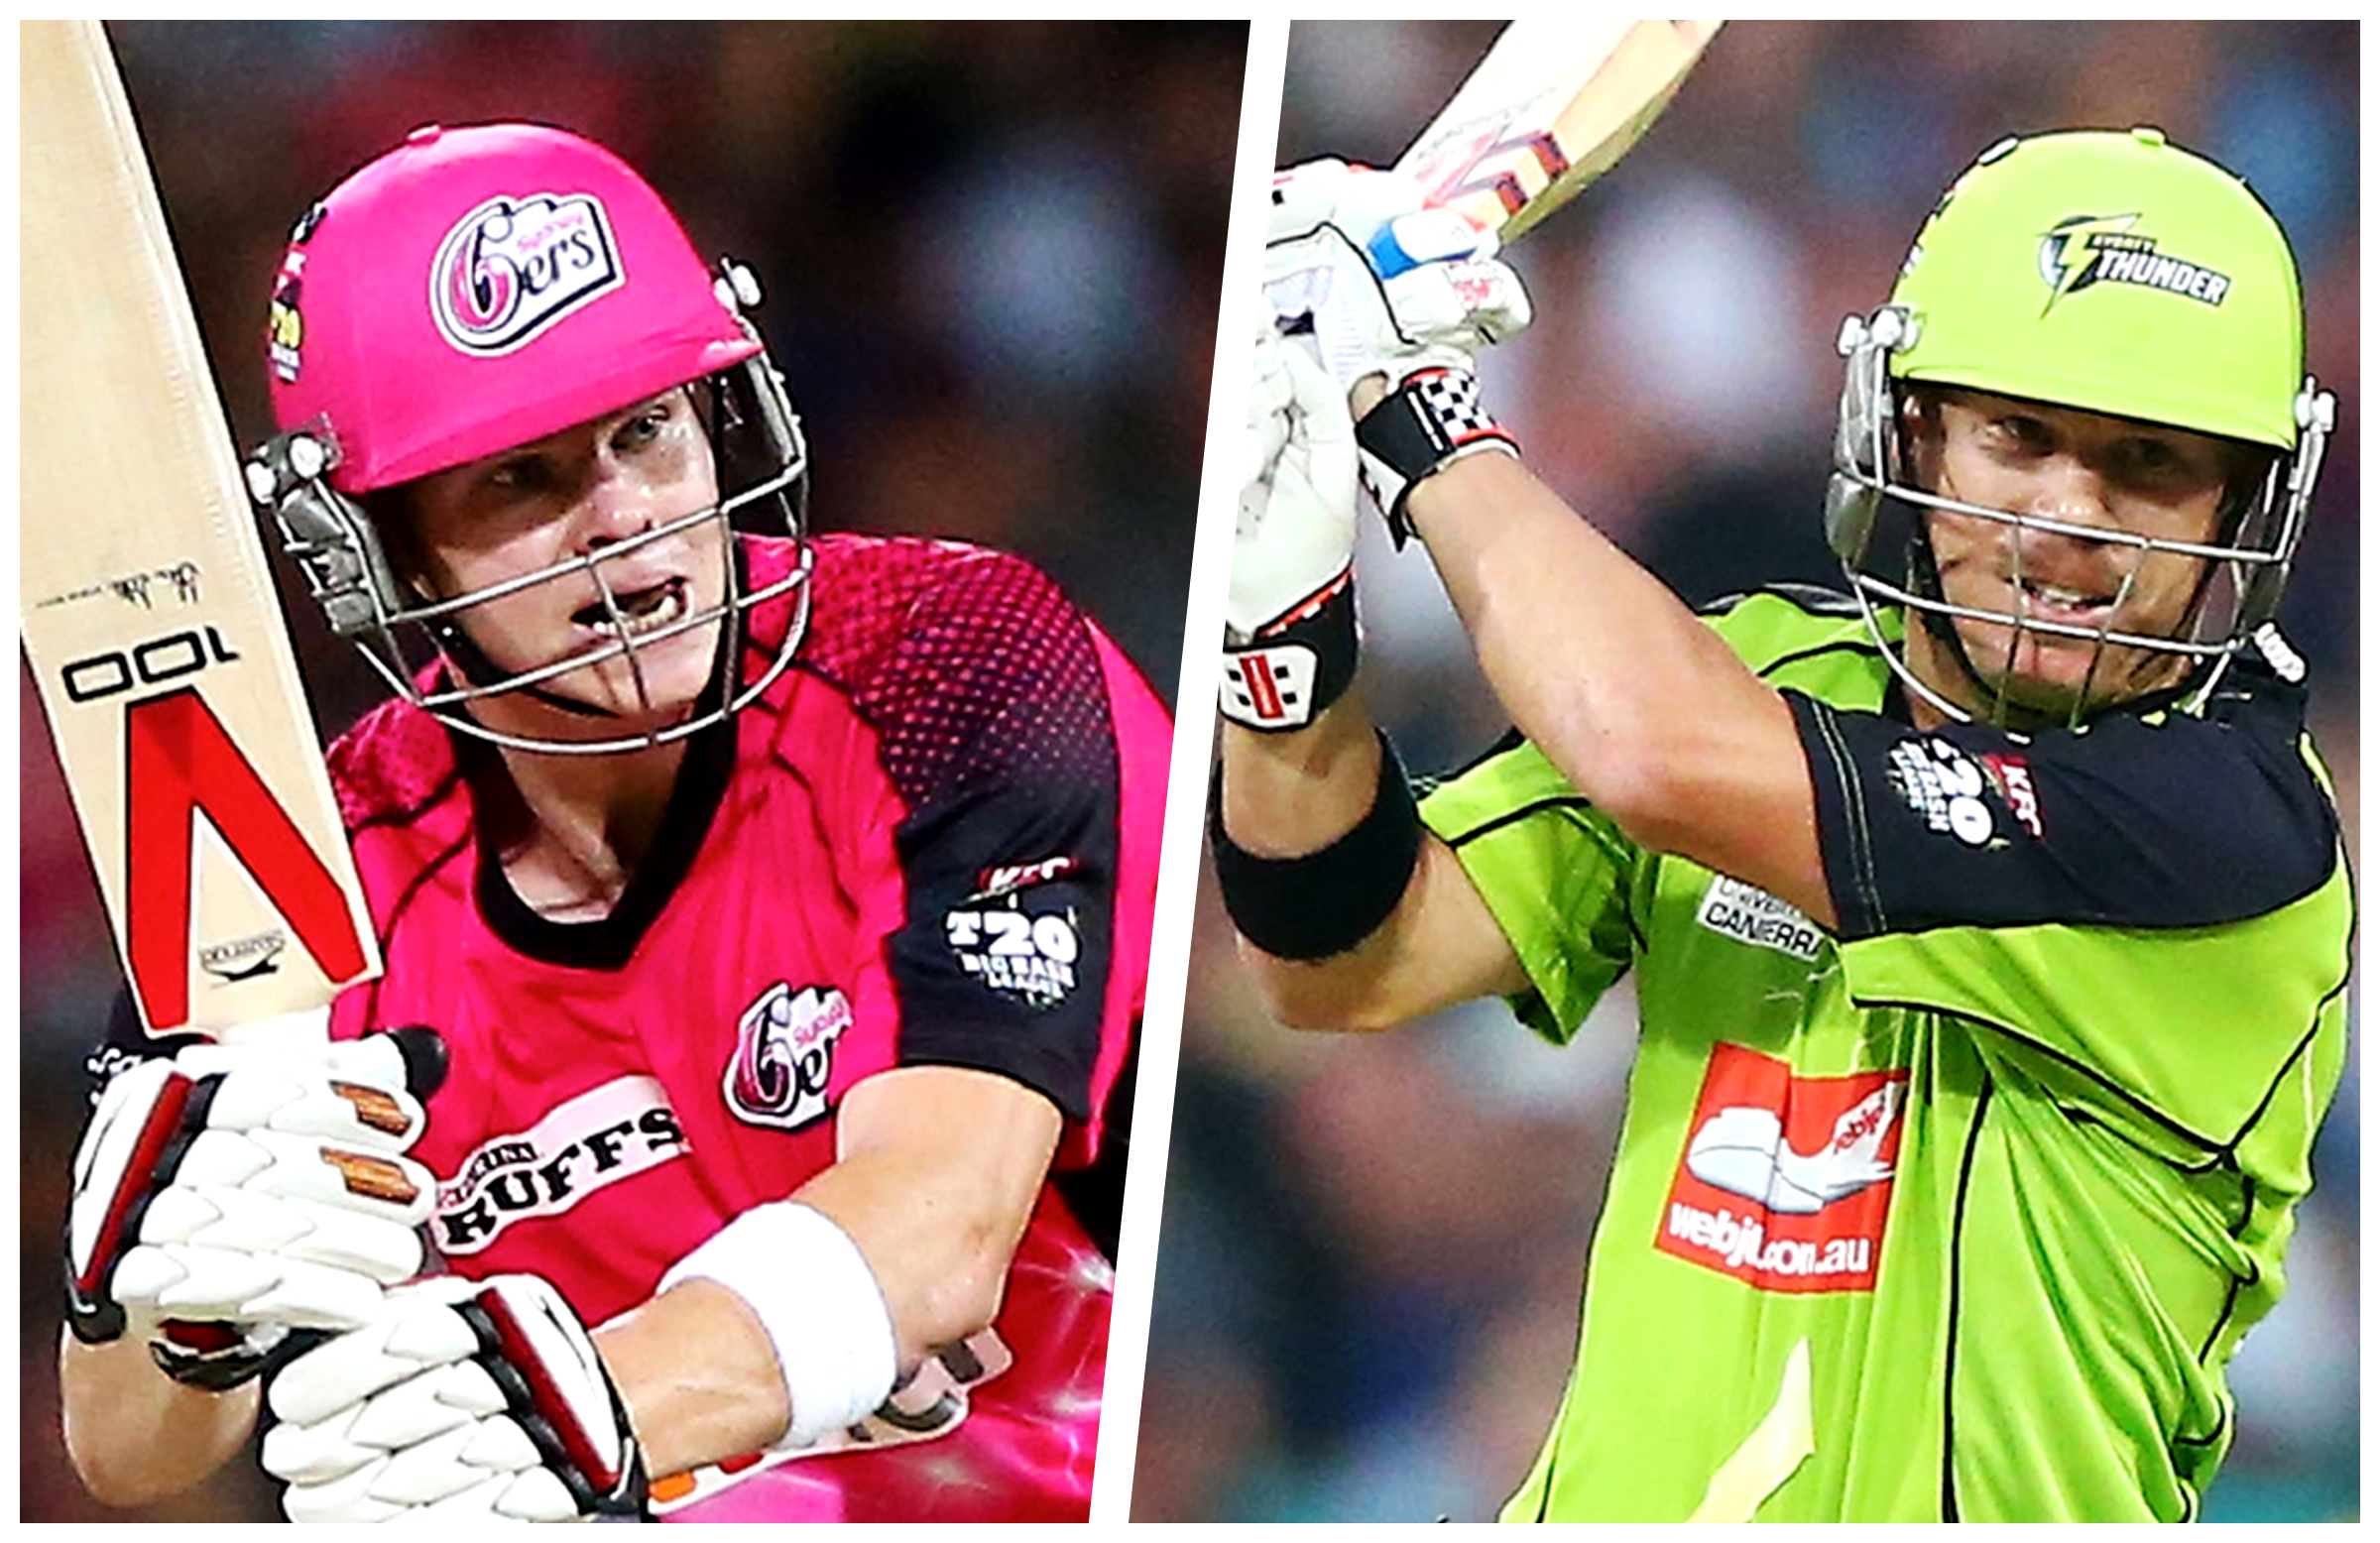 Steve Smith and David Warner play for Sydney Sixers and Sydney Thunders respectively. (Cricket.com.au)